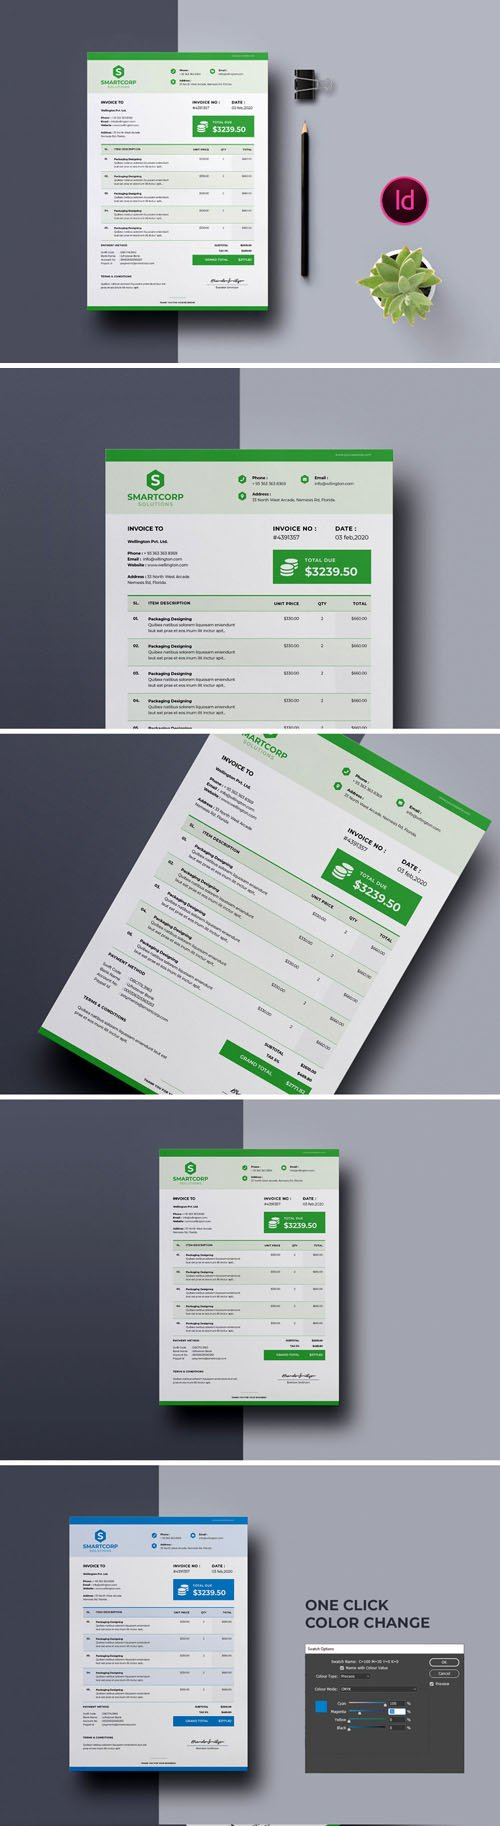 Invoice Template Vol.3 [A4/US-Letter] - Indesign Template